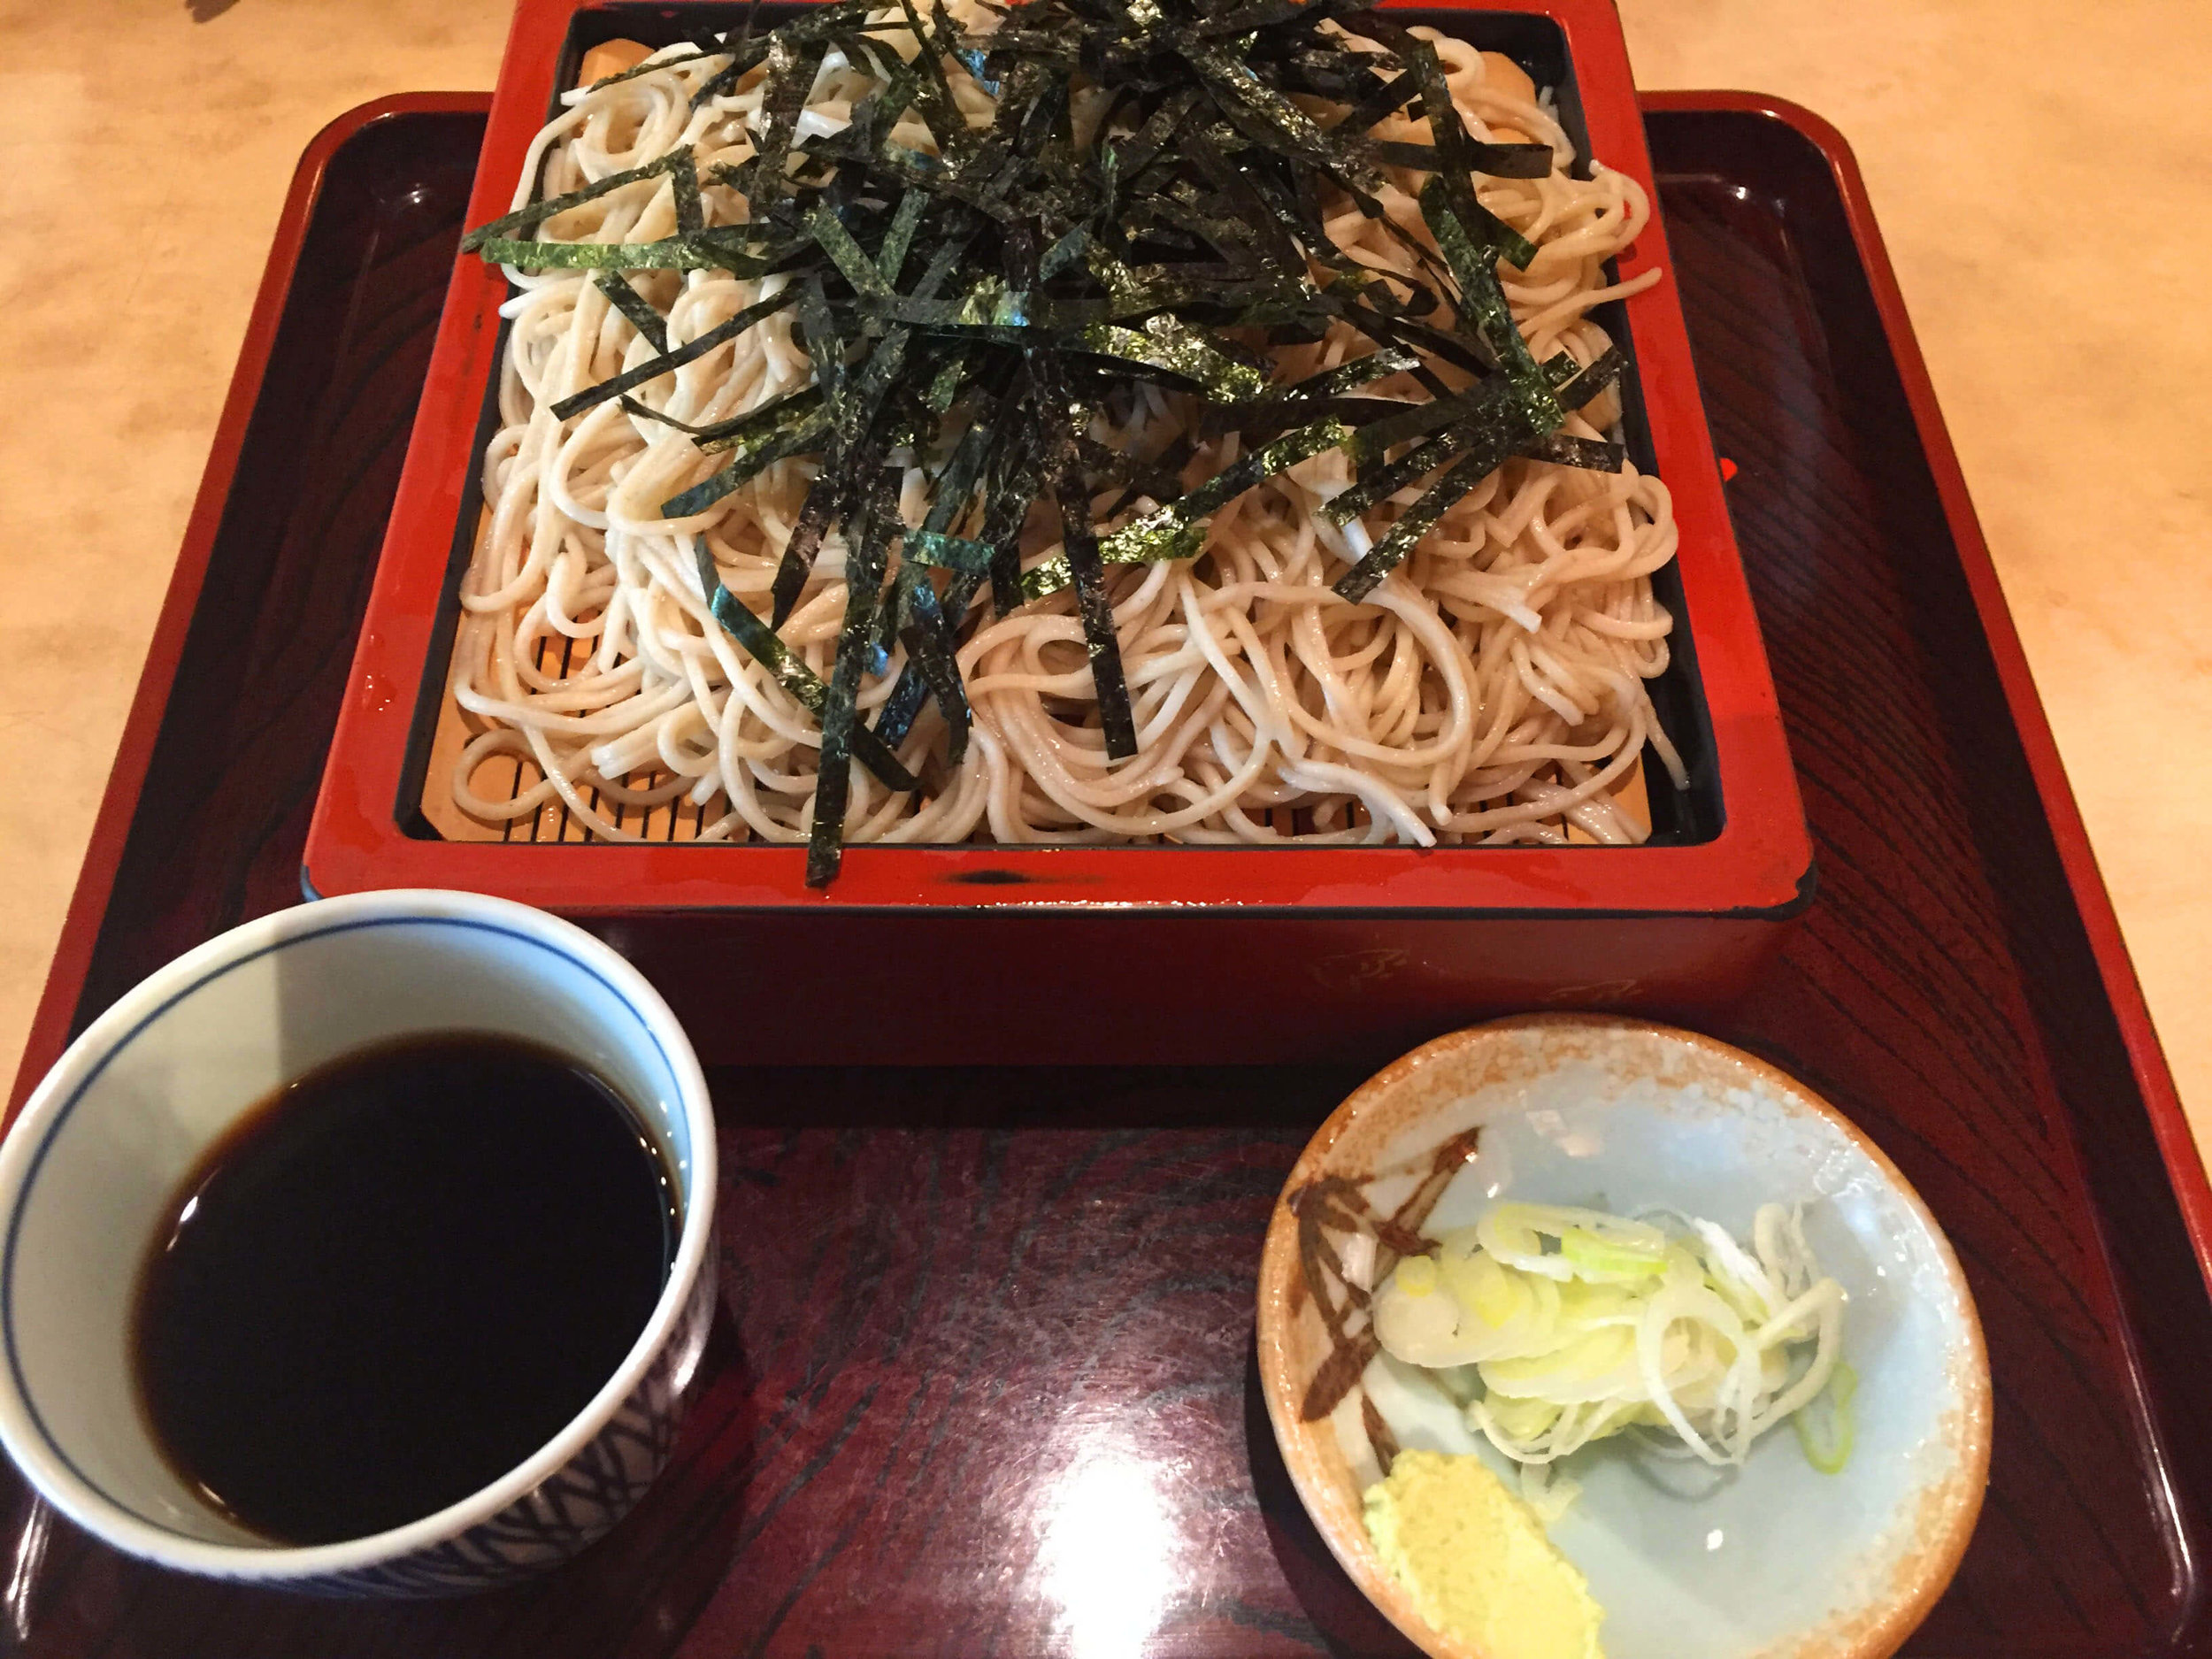 Trying delicious soba noodles